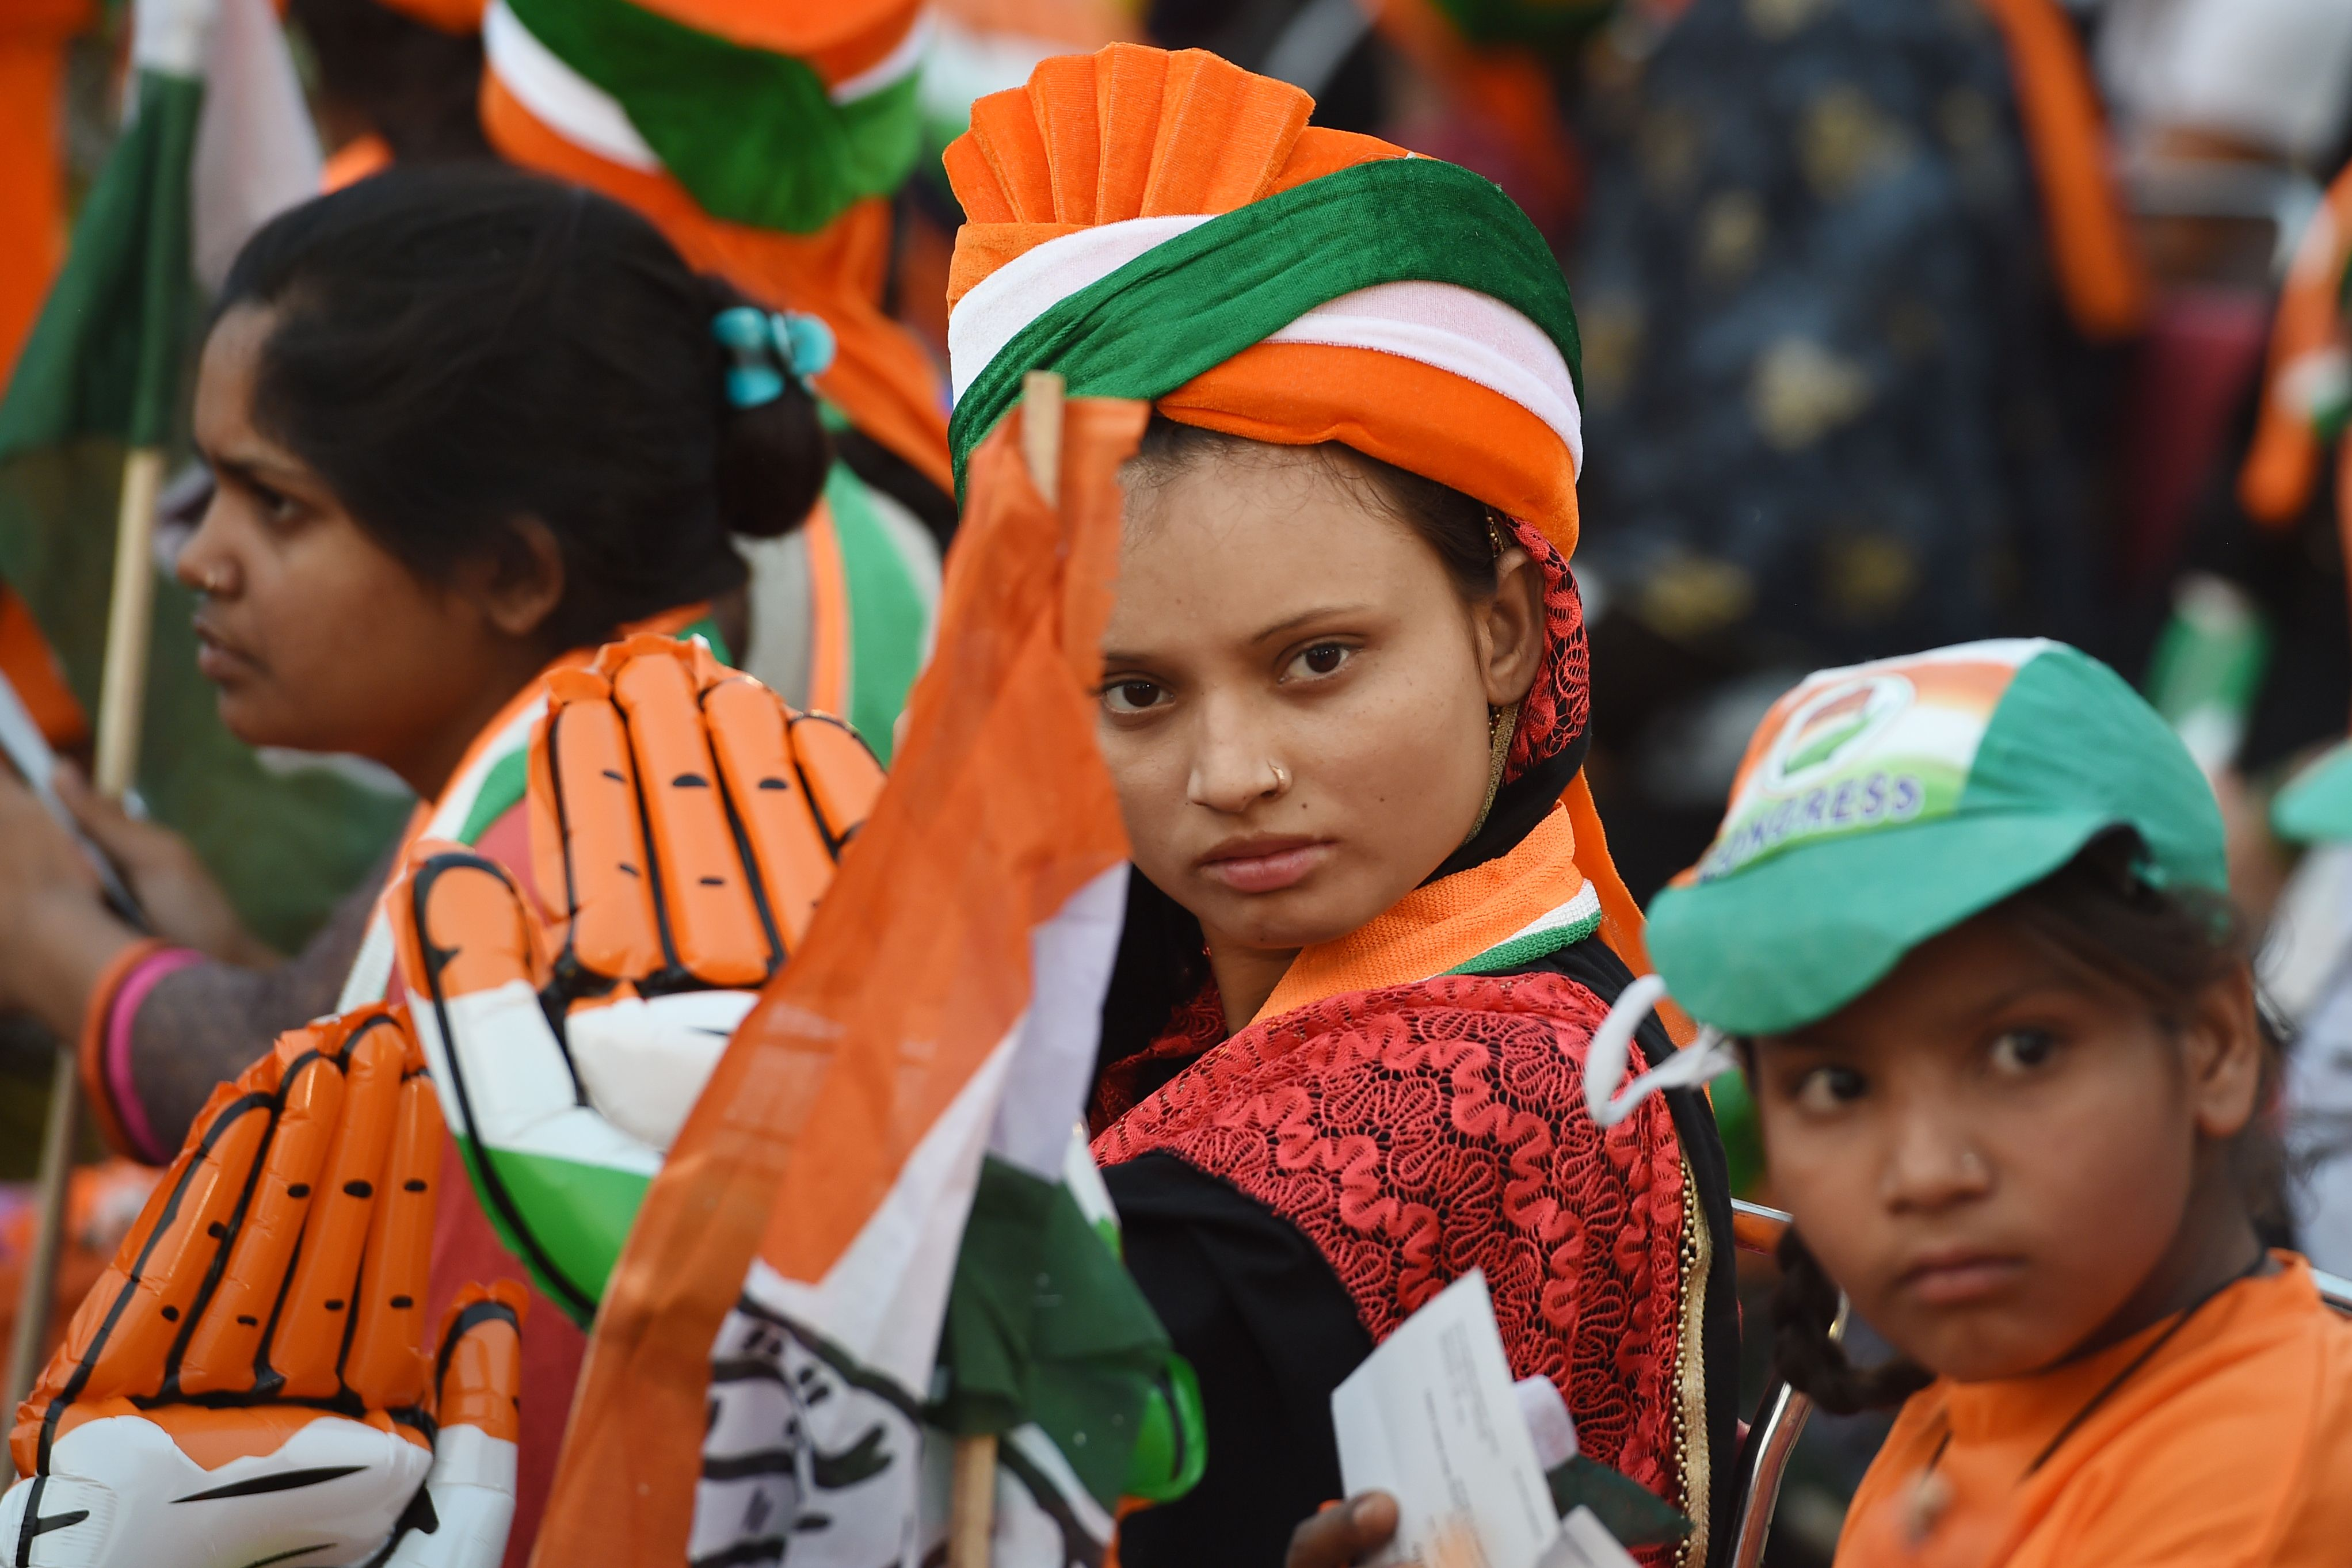 Indian supporters of Congress Party attend a rally addressed by Congress Party President Rahul Gandhi in New Delhi on May 9, 2019.